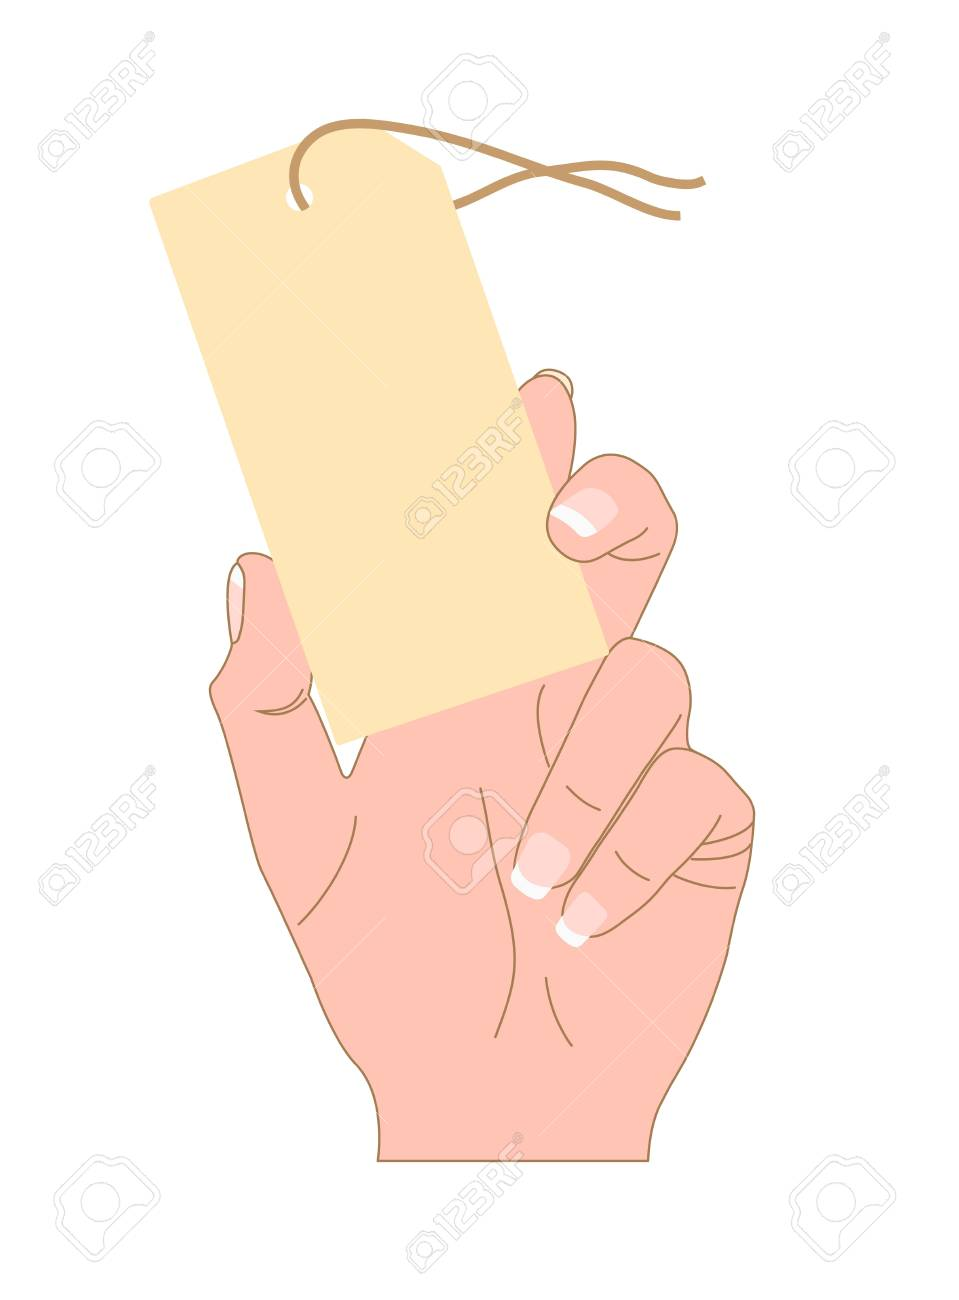 The Label in a hand  This offer to make purchase Stock Vector - 17729211